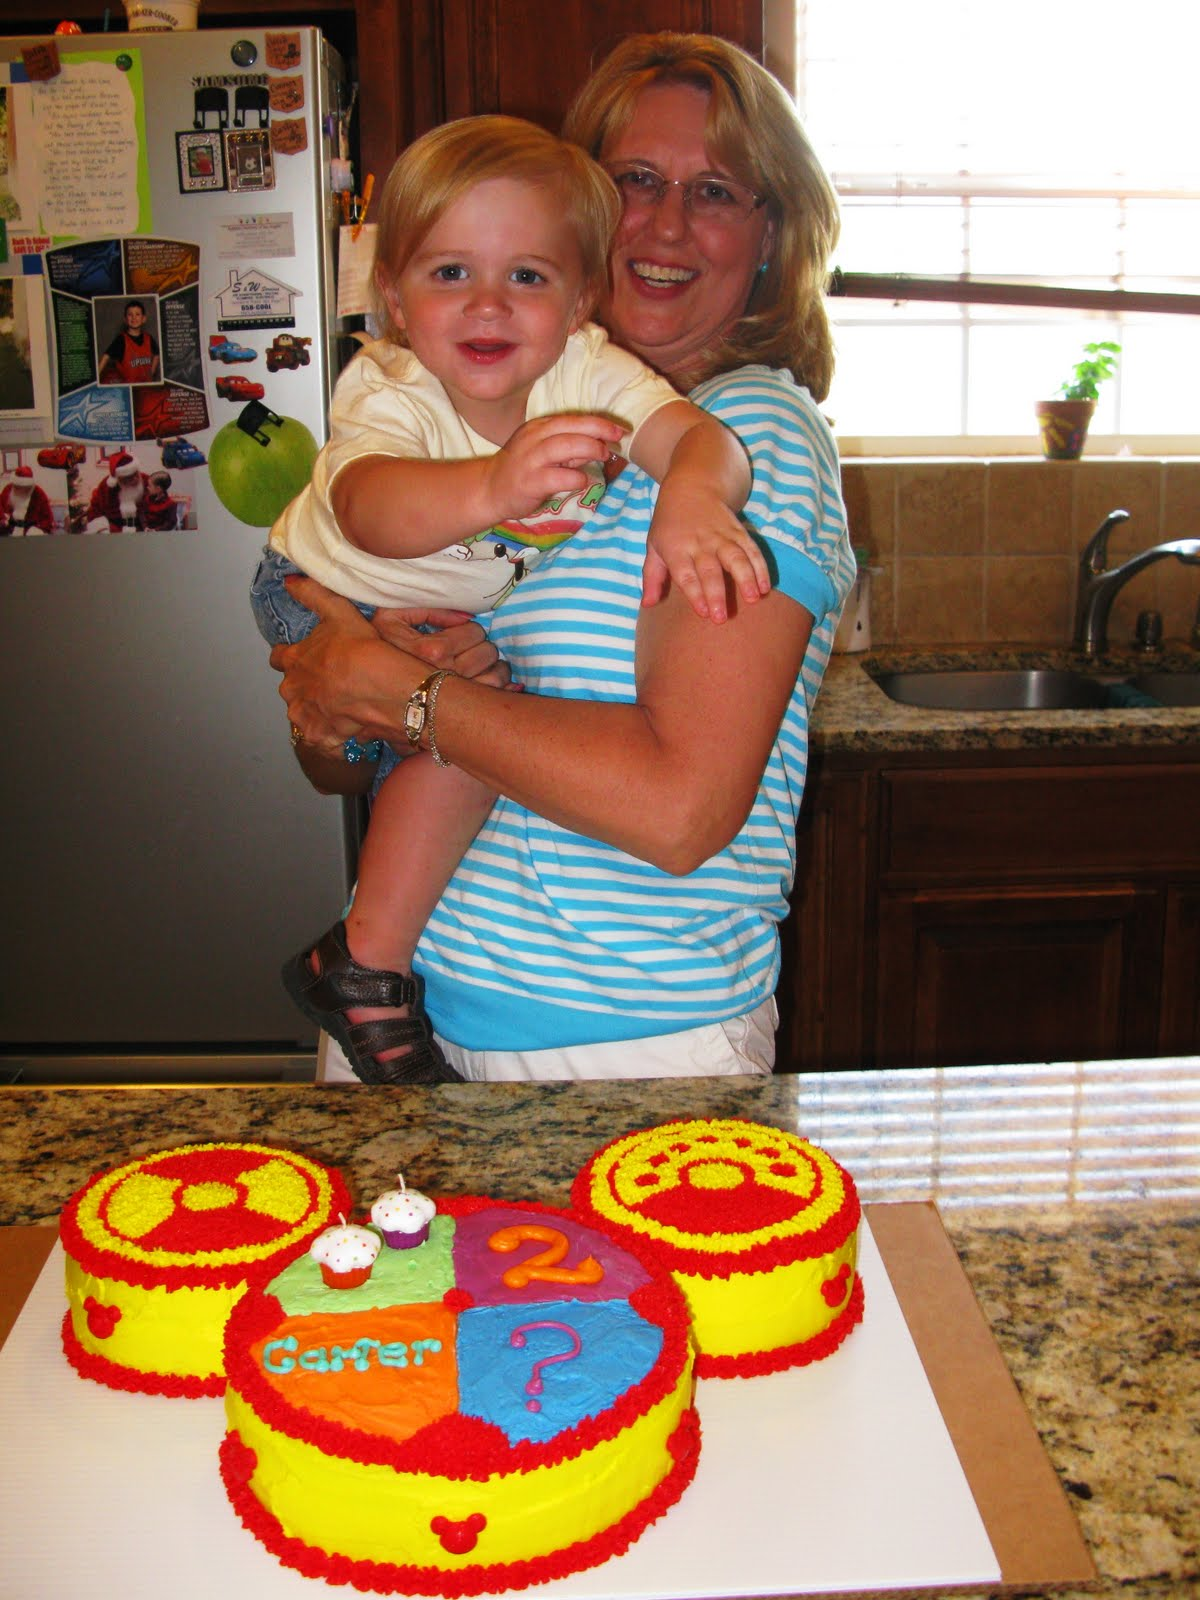 Cake Decorating Classes Plano Tx : A Carousel of Thoughts